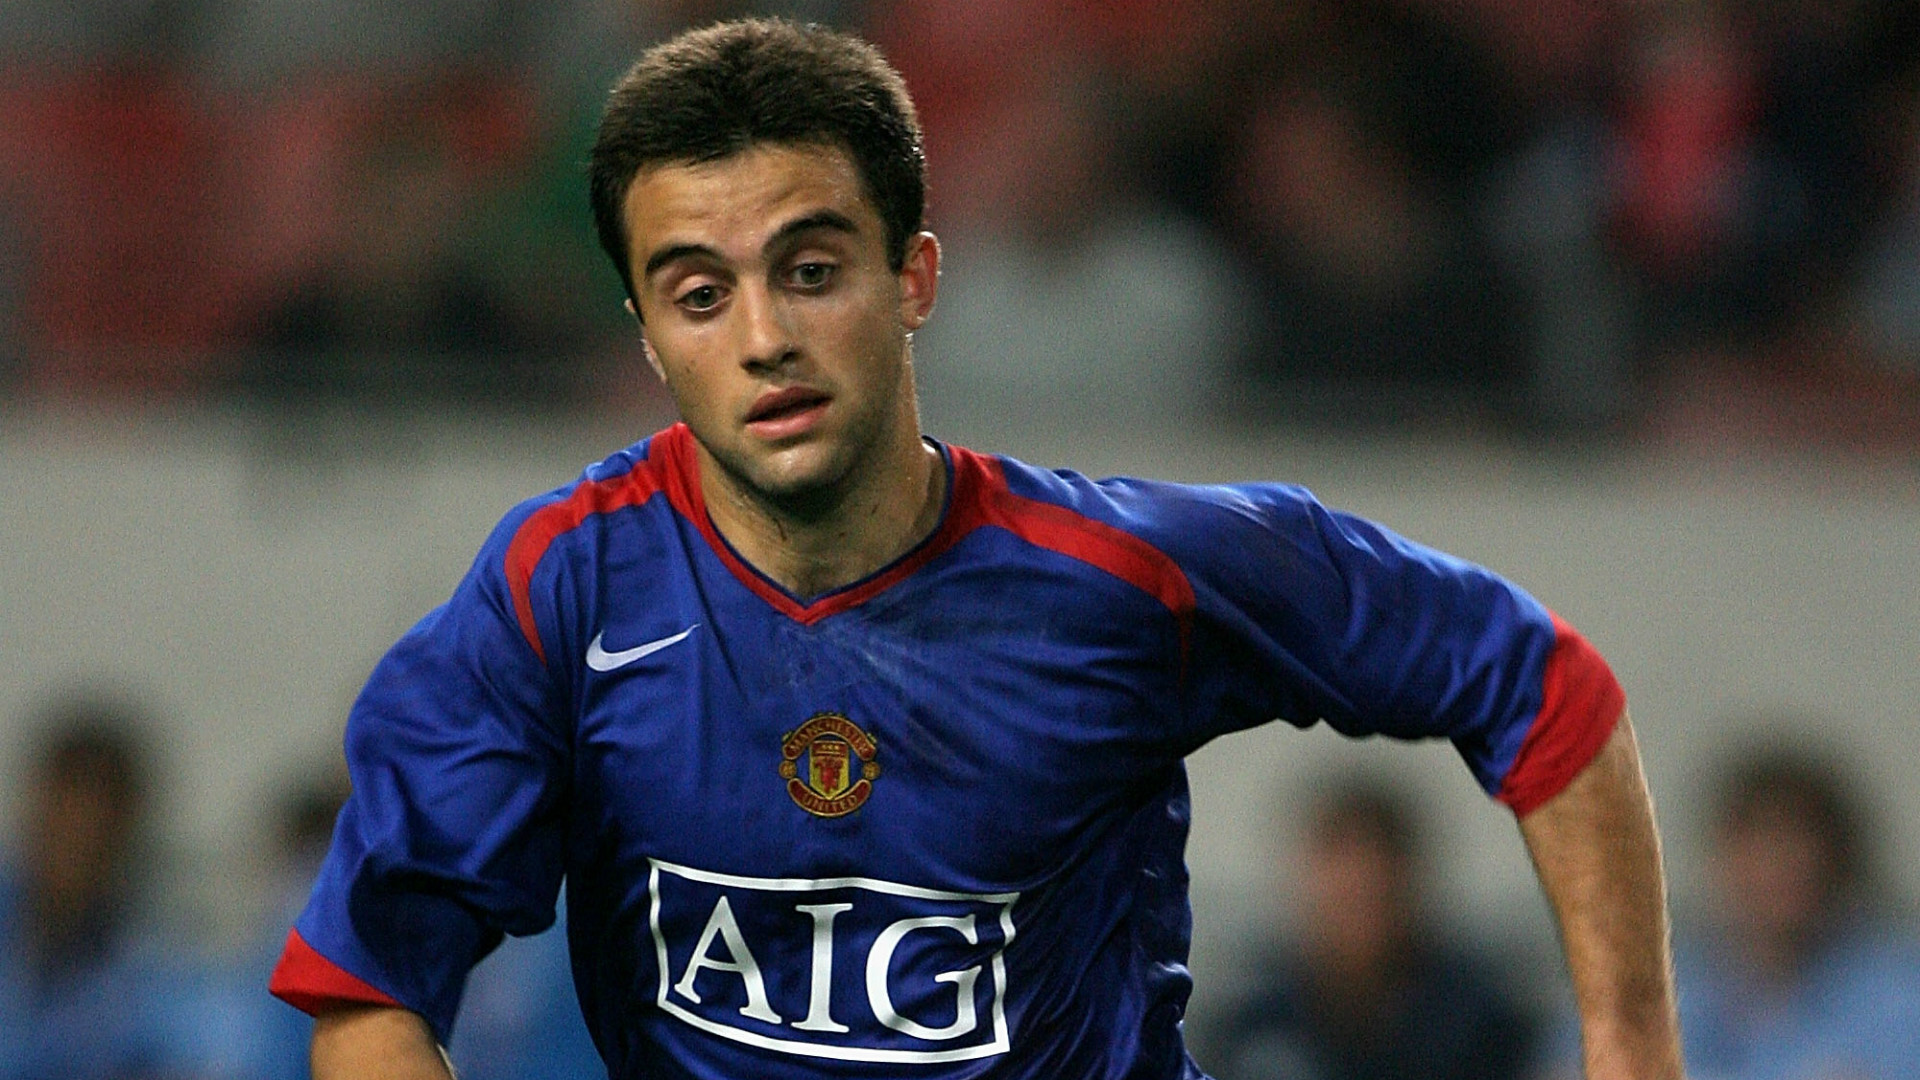 Americans couldn t care less as Giuseppe Rossi s sad soccer tale